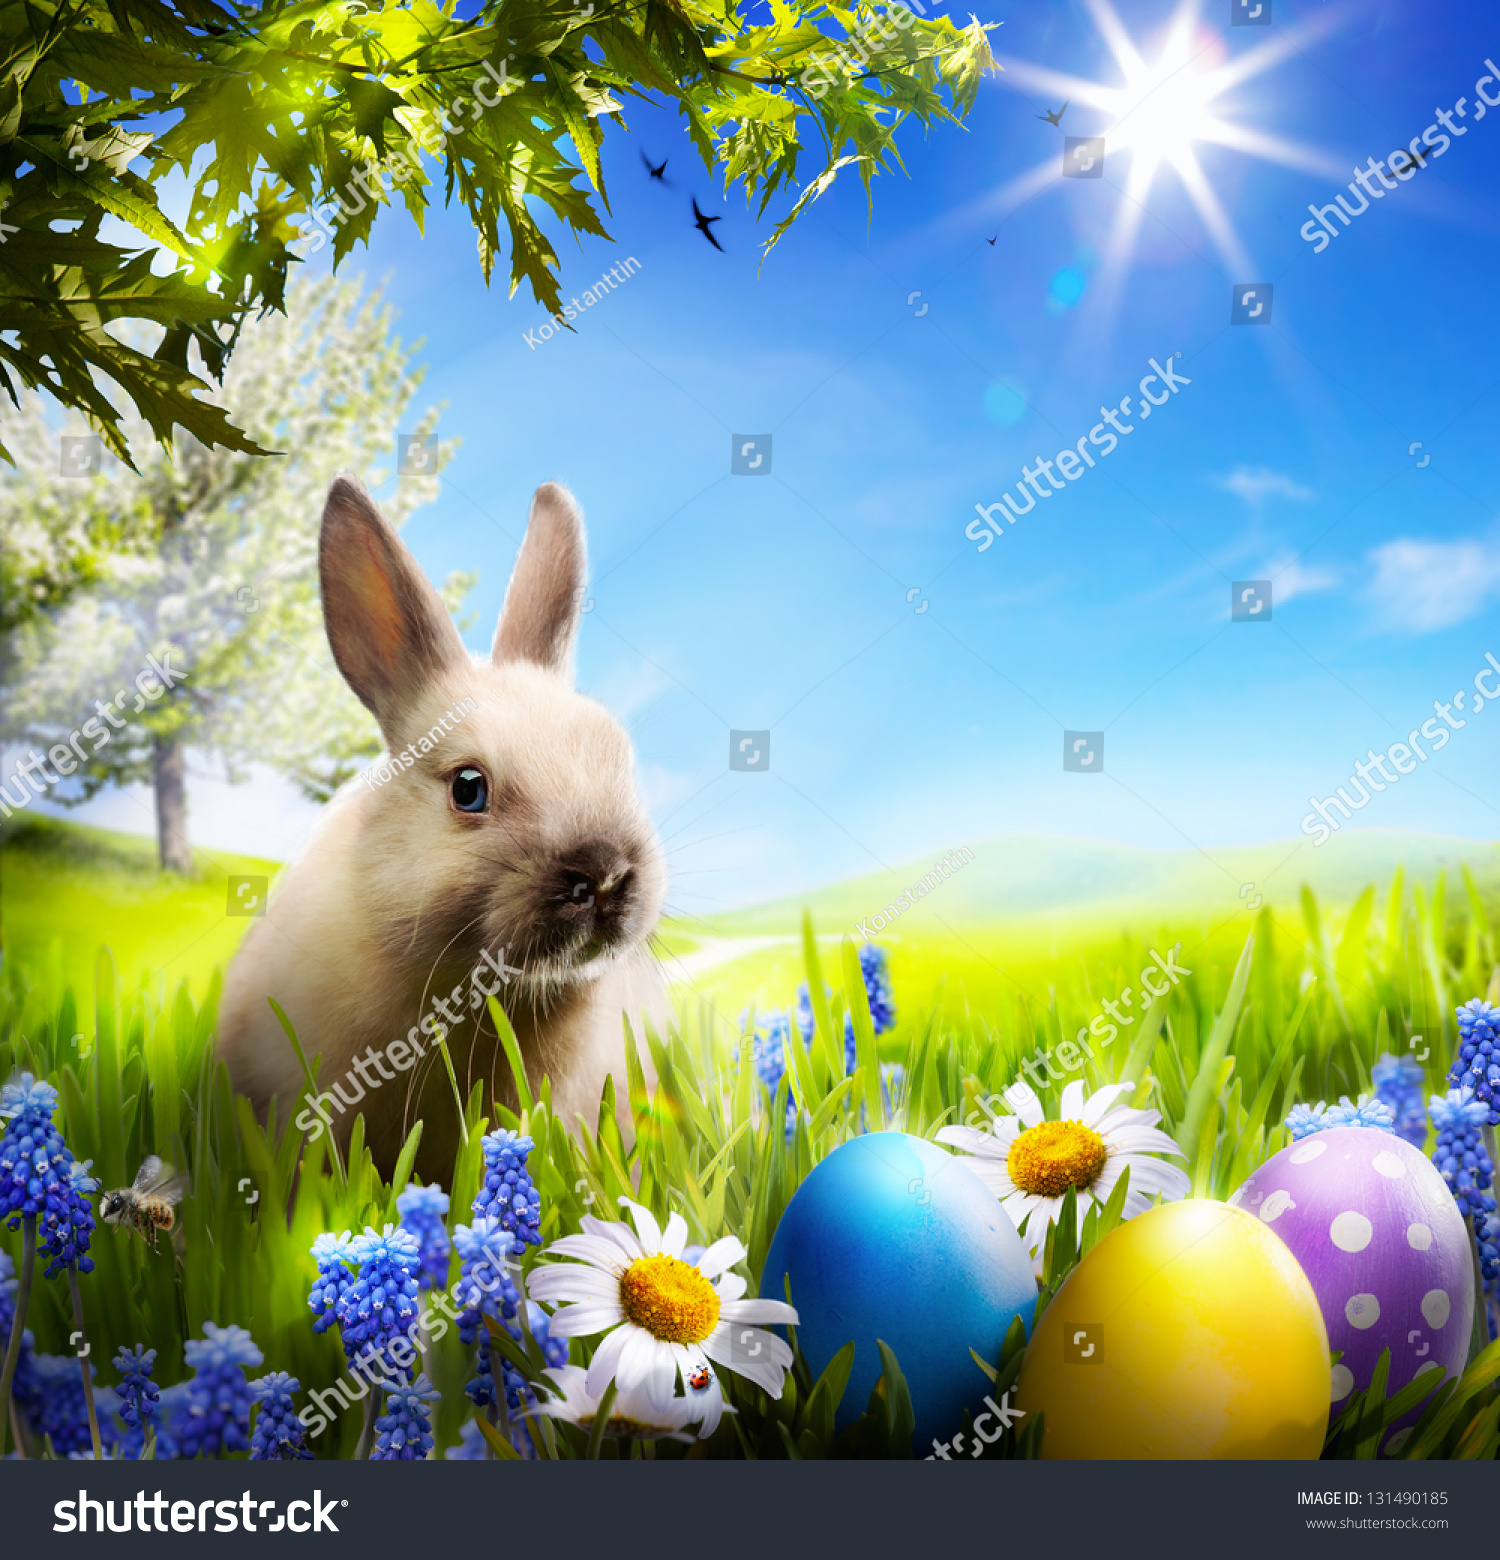 Art Little Easter Bunny Easter Eggs Stock Photo 131490185 ... for Real Easter Bunny With Eggs  177nar